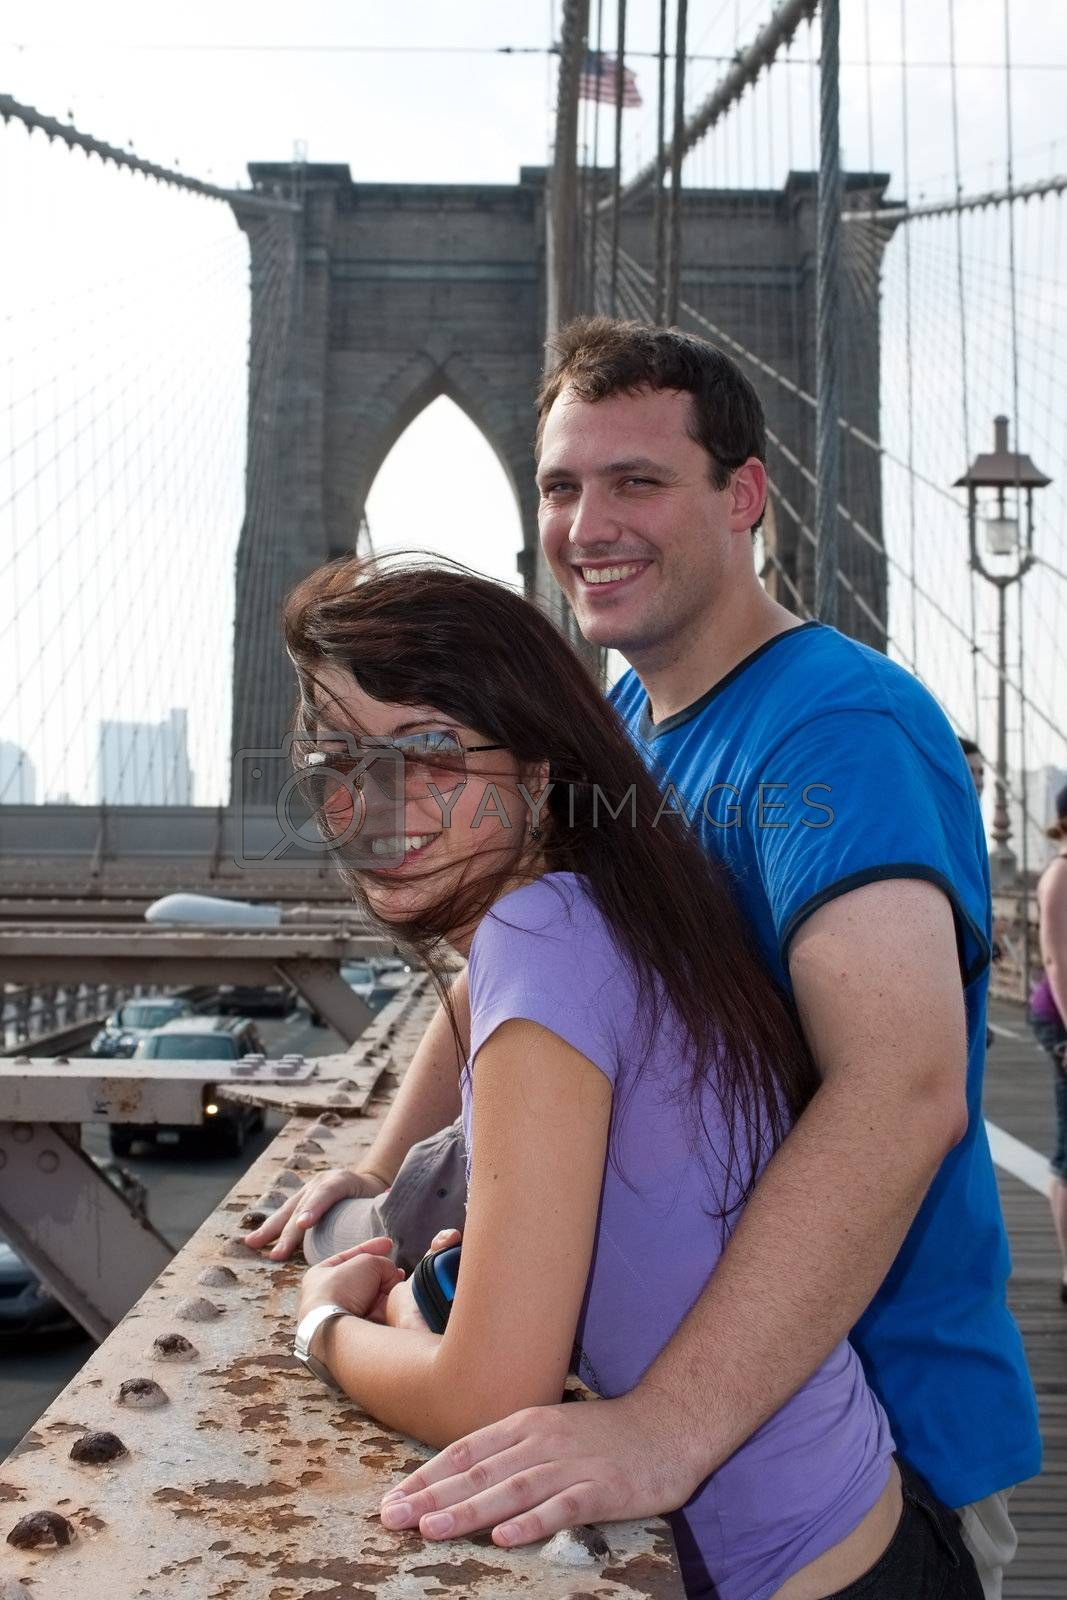 A smiling couple of tourists visit Brooklyn New York by the world famous Brooklyn Bridge.